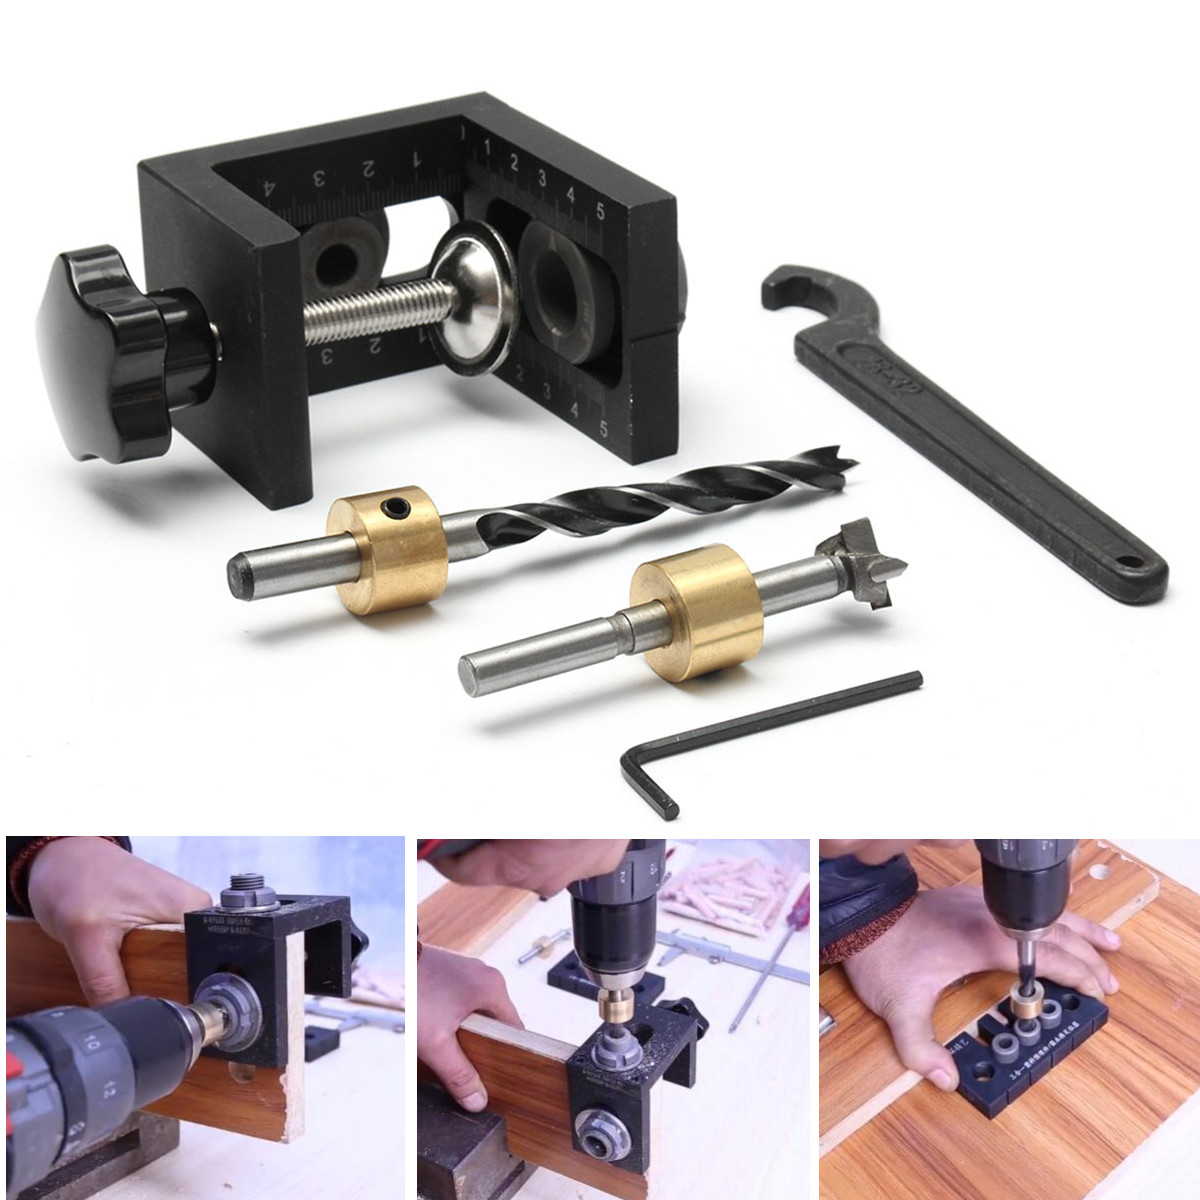 цена на Woodworking Drill Guide Set Locator Woodworking Pocket Hole Locate Punch Jig Kit + Step Drilling Bit Wood Tools Set